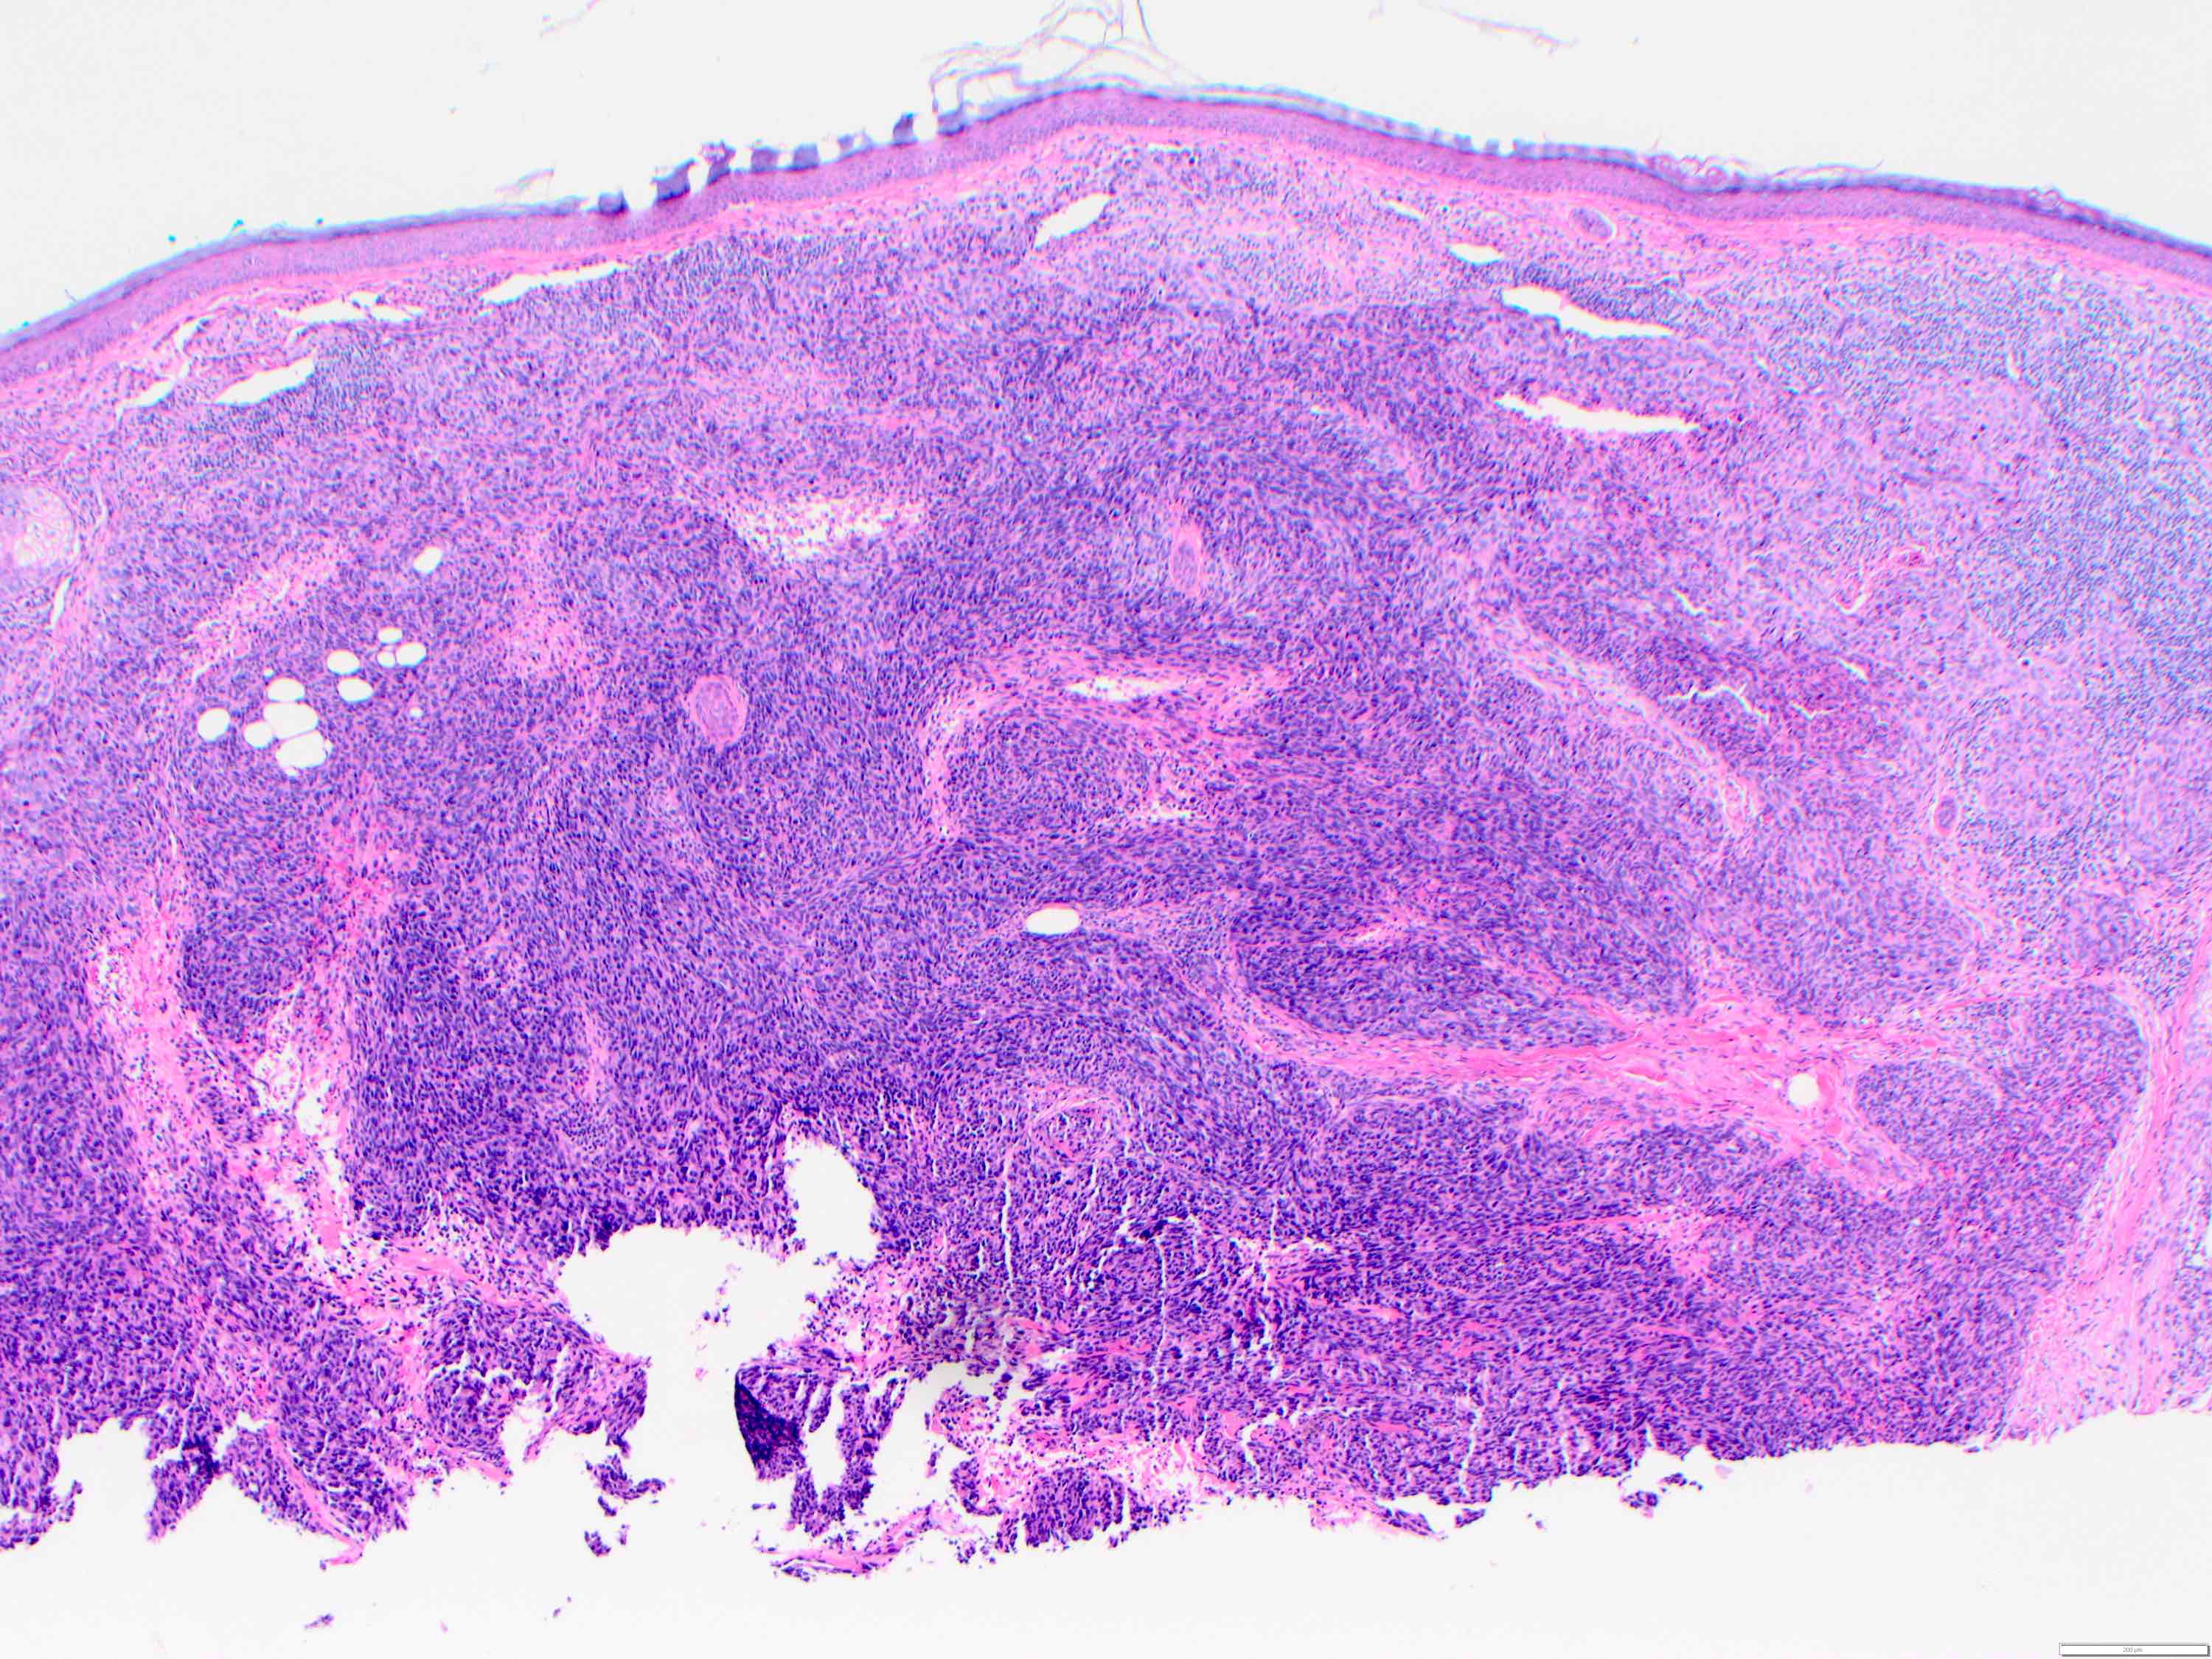 Solid pattern of angiosarcoma